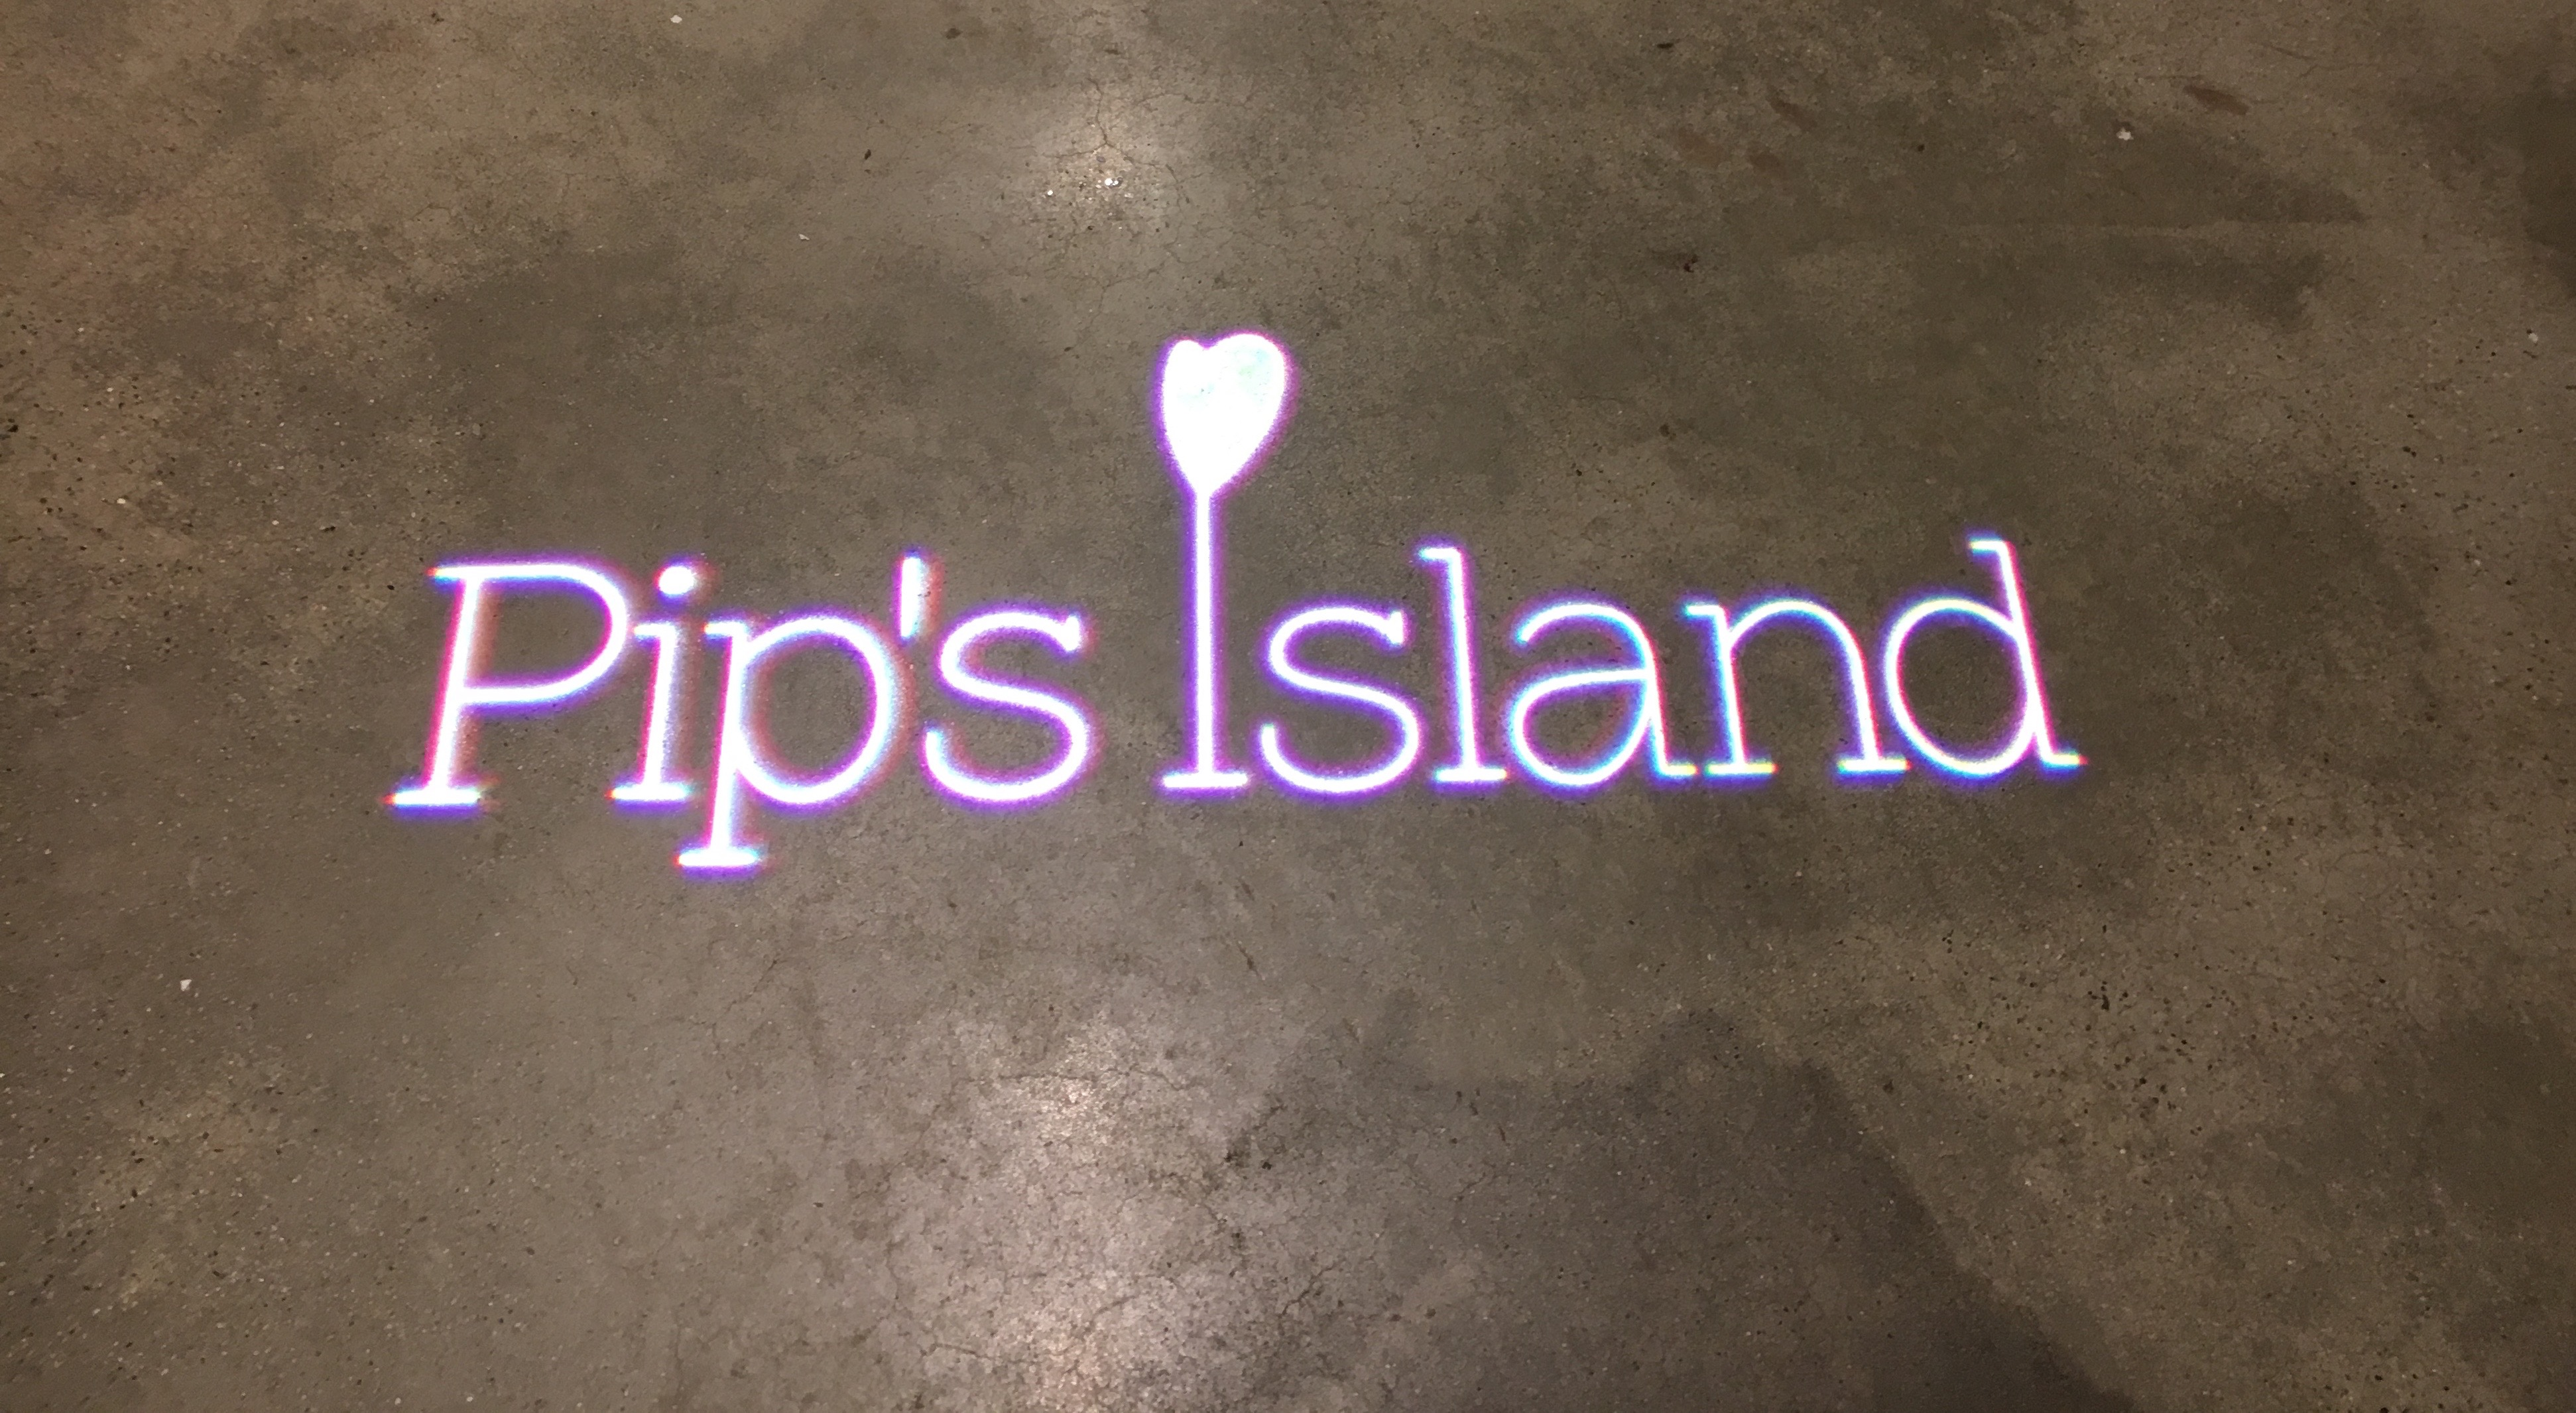 Pip's Island is The Coolest Kids' Experience...Ever